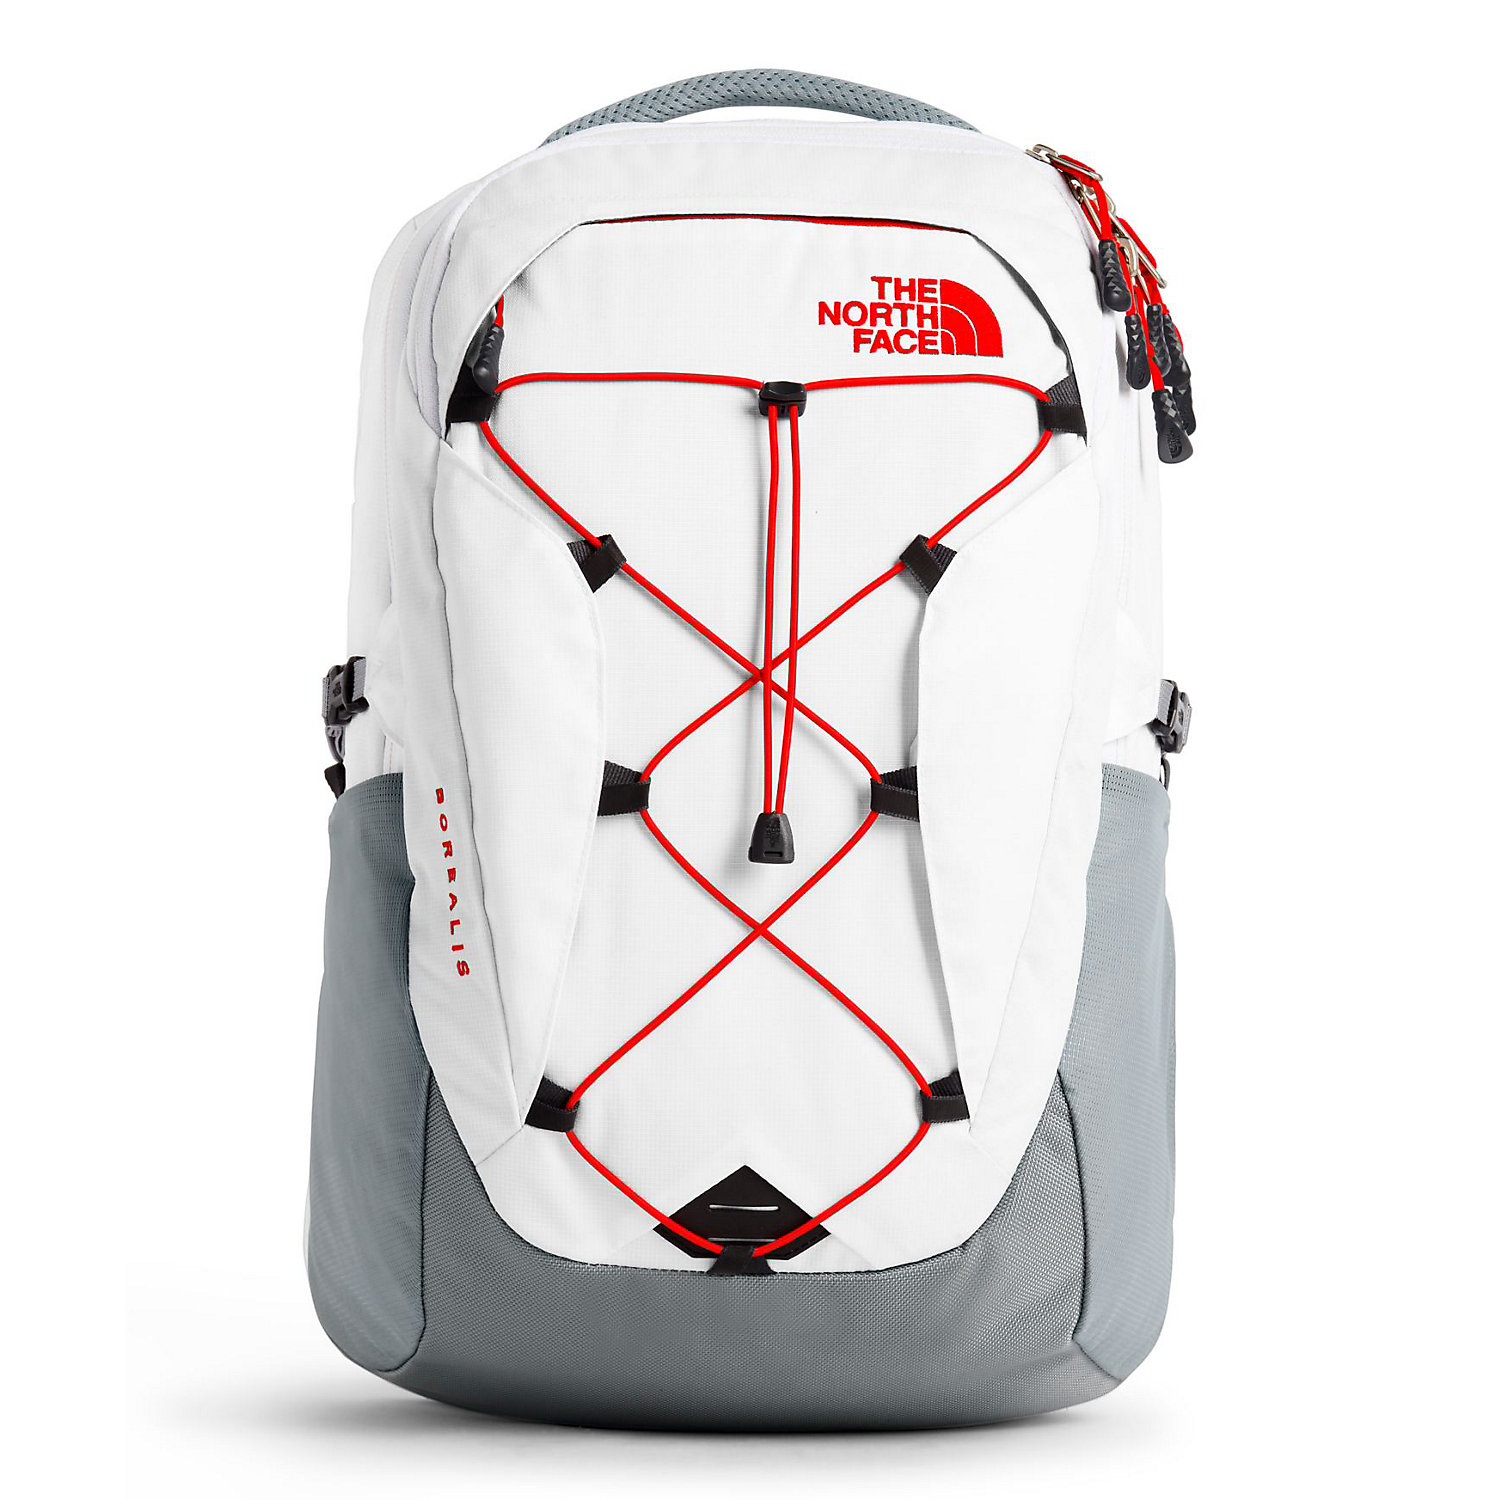 THE NORTH FACE Men/'s Borealis Backpack TNF Black Heather//Biking Red One Size